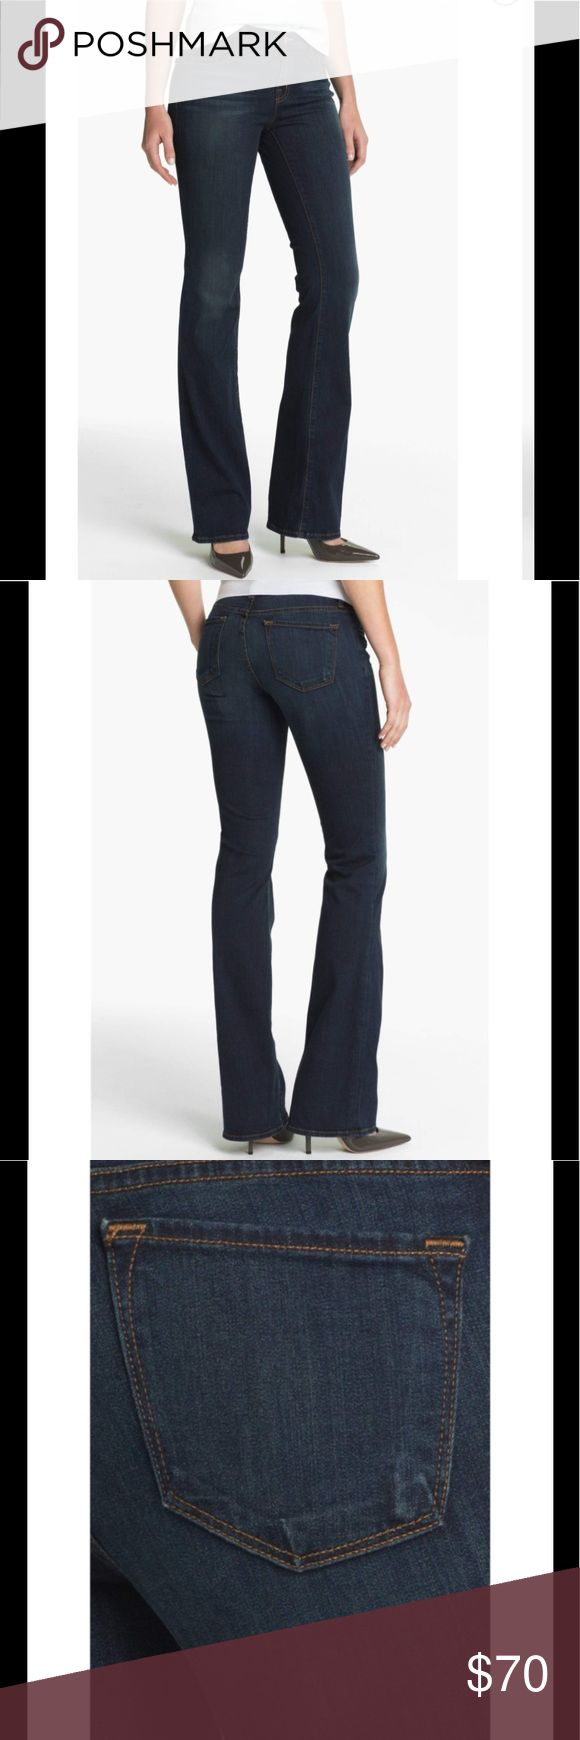 """NEW J Brand Veruca Jeans Dark, dimensional denim shapes versatile, mid-rise jeans styled with a slim fit through the seat and thighs that ends with flattering bootcut hems. Approx. inseam: 34"""" with 18"""" leg opening. Approx. rise: front 9""""; back 13 1/2"""". J Brand Jeans"""